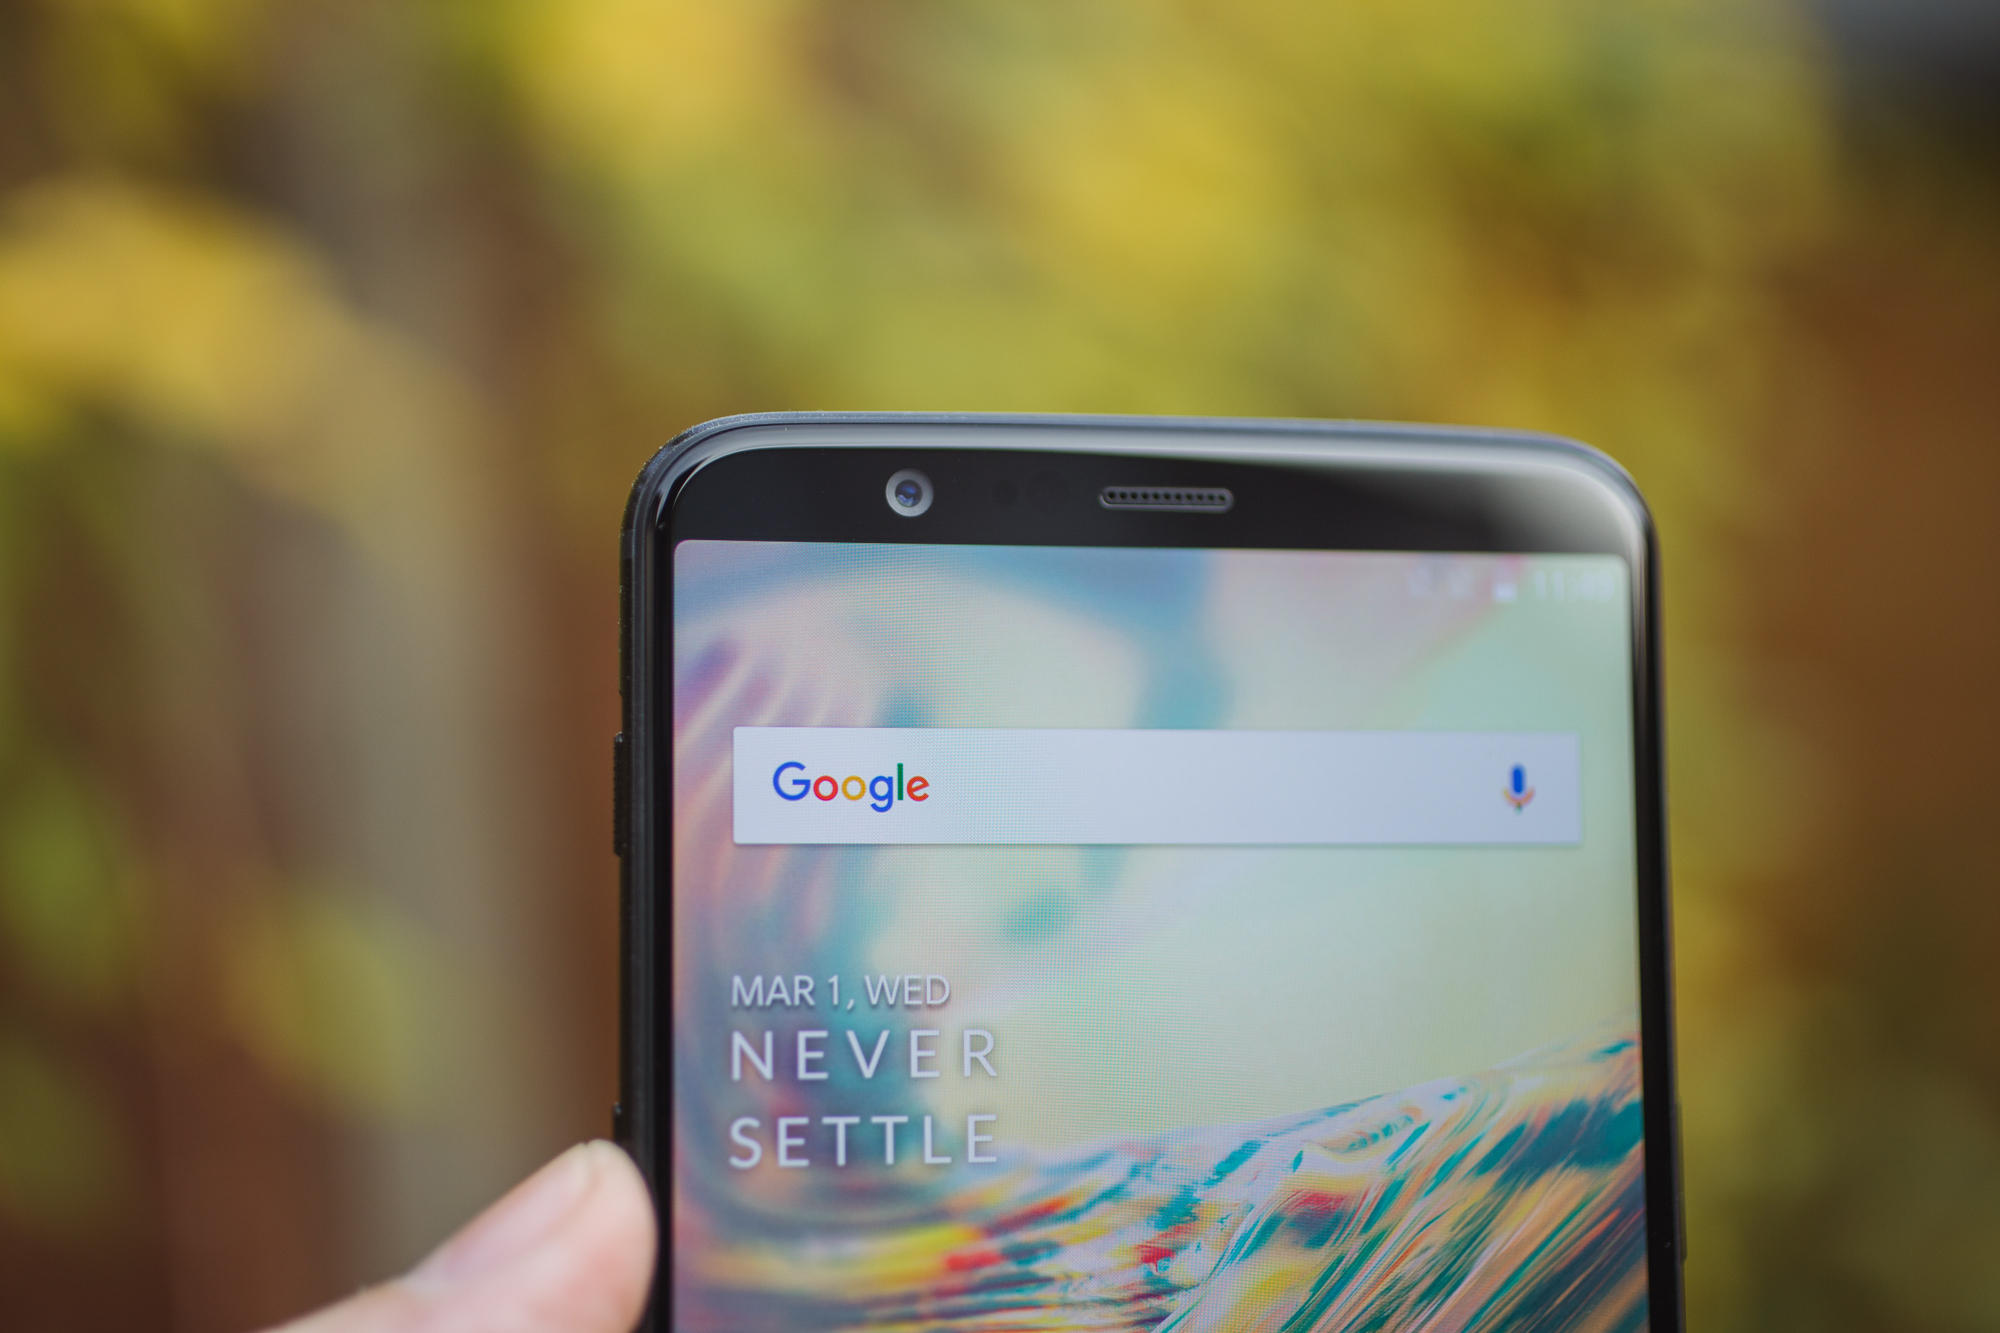 oneplus-5t-product-22